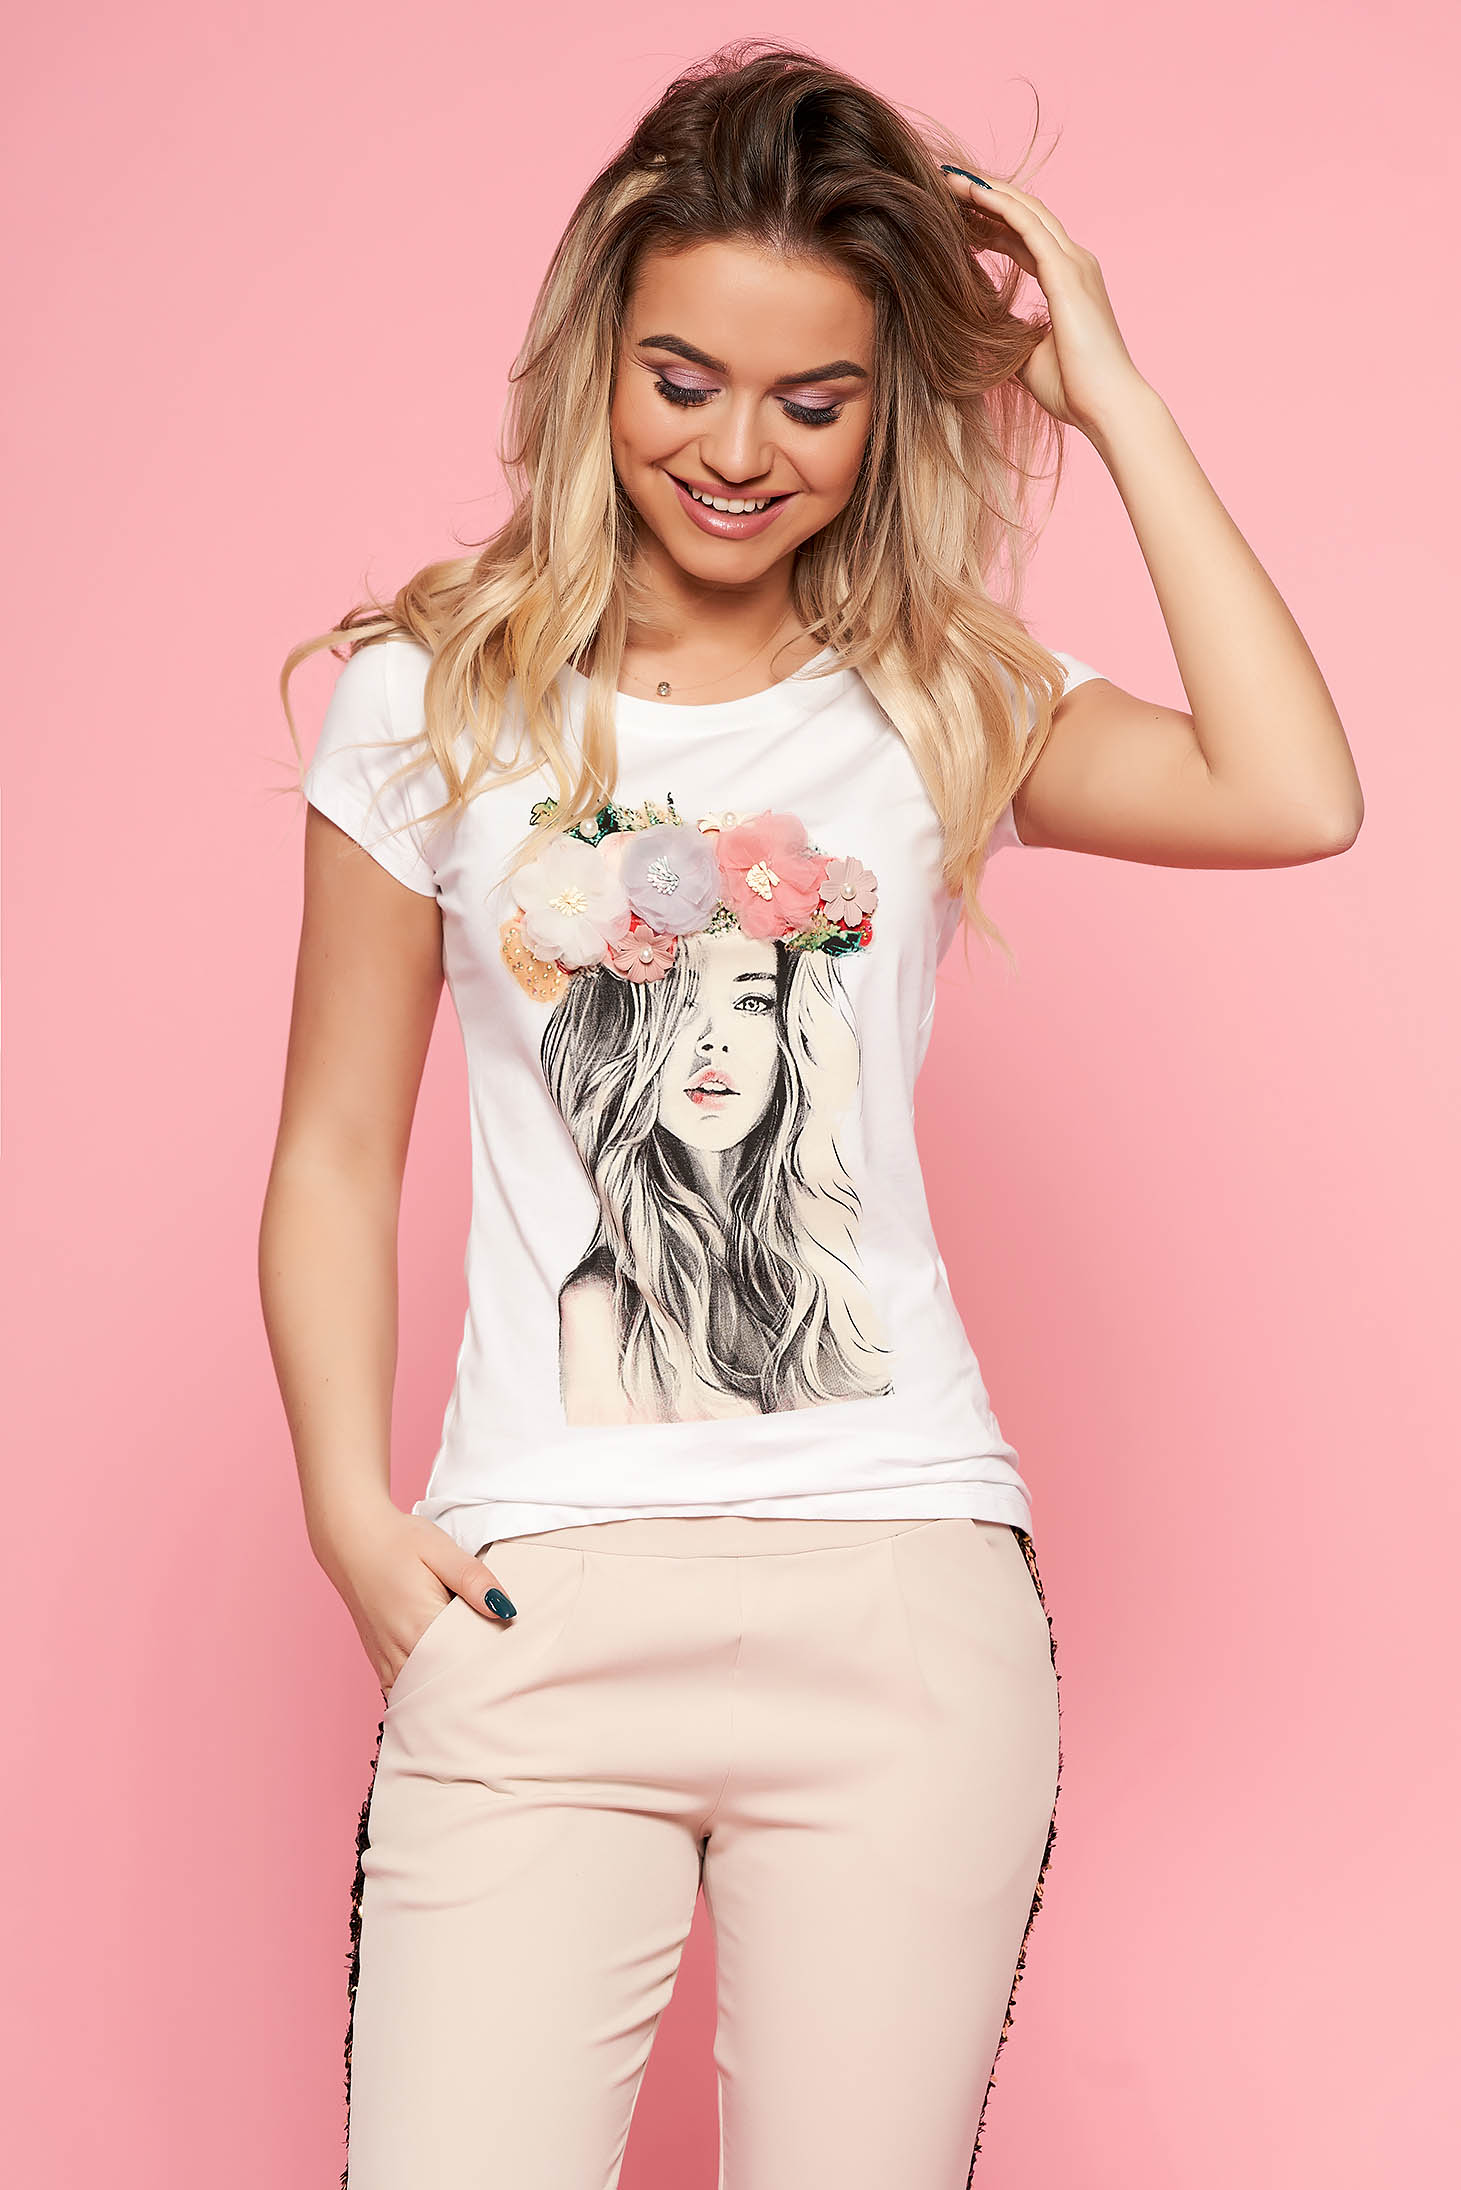 SunShine white t-shirt casual slightly elastic cotton with tented cut with floral details with 3d effect